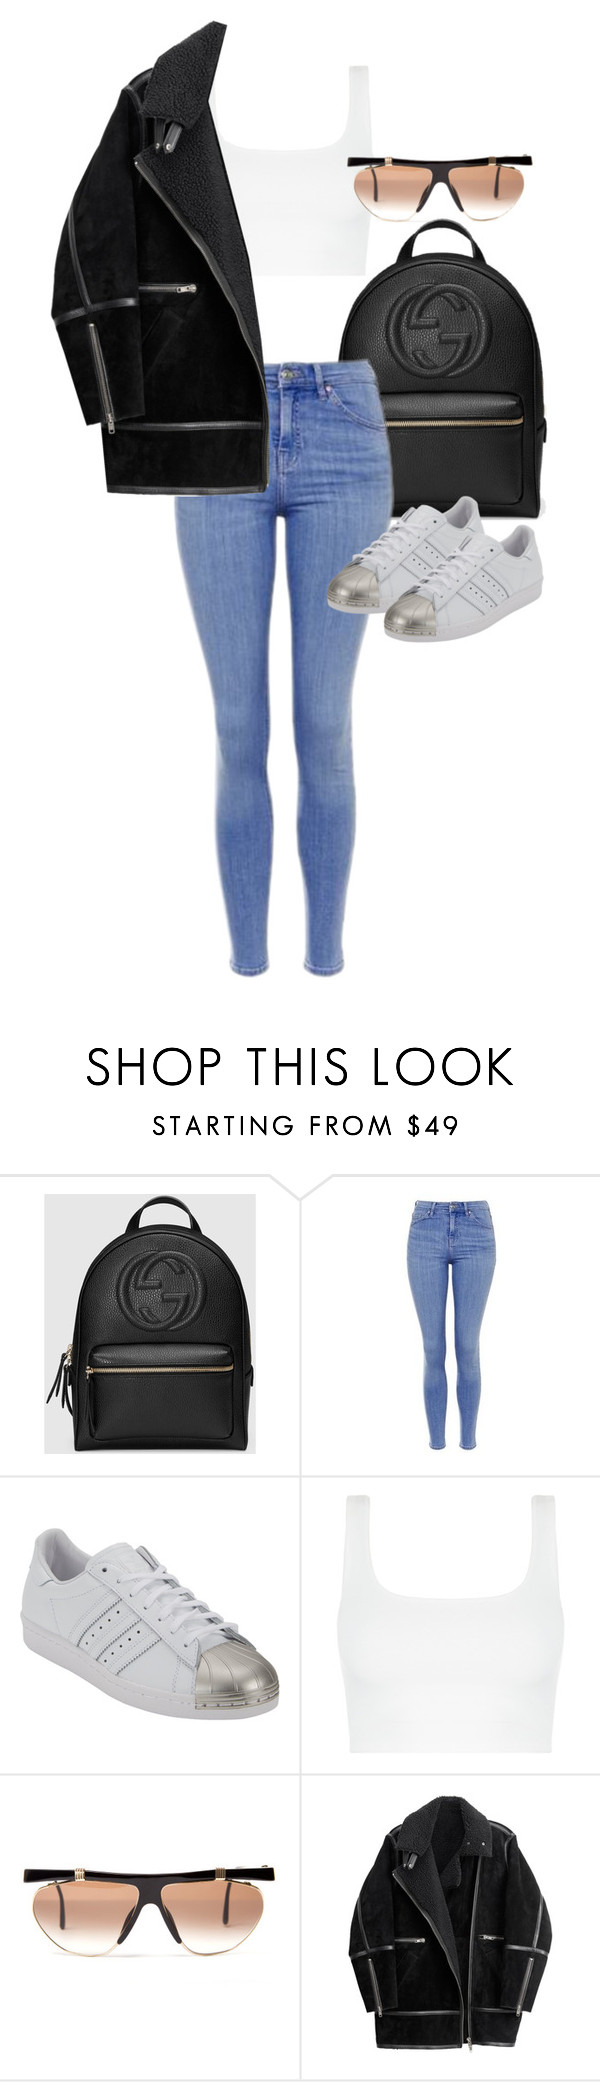 """Untitled #6712"" by ashley-r0se-xo ❤ liked on Polyvore featuring Gucci, Topshop, adidas, Retro Sun and H&M"